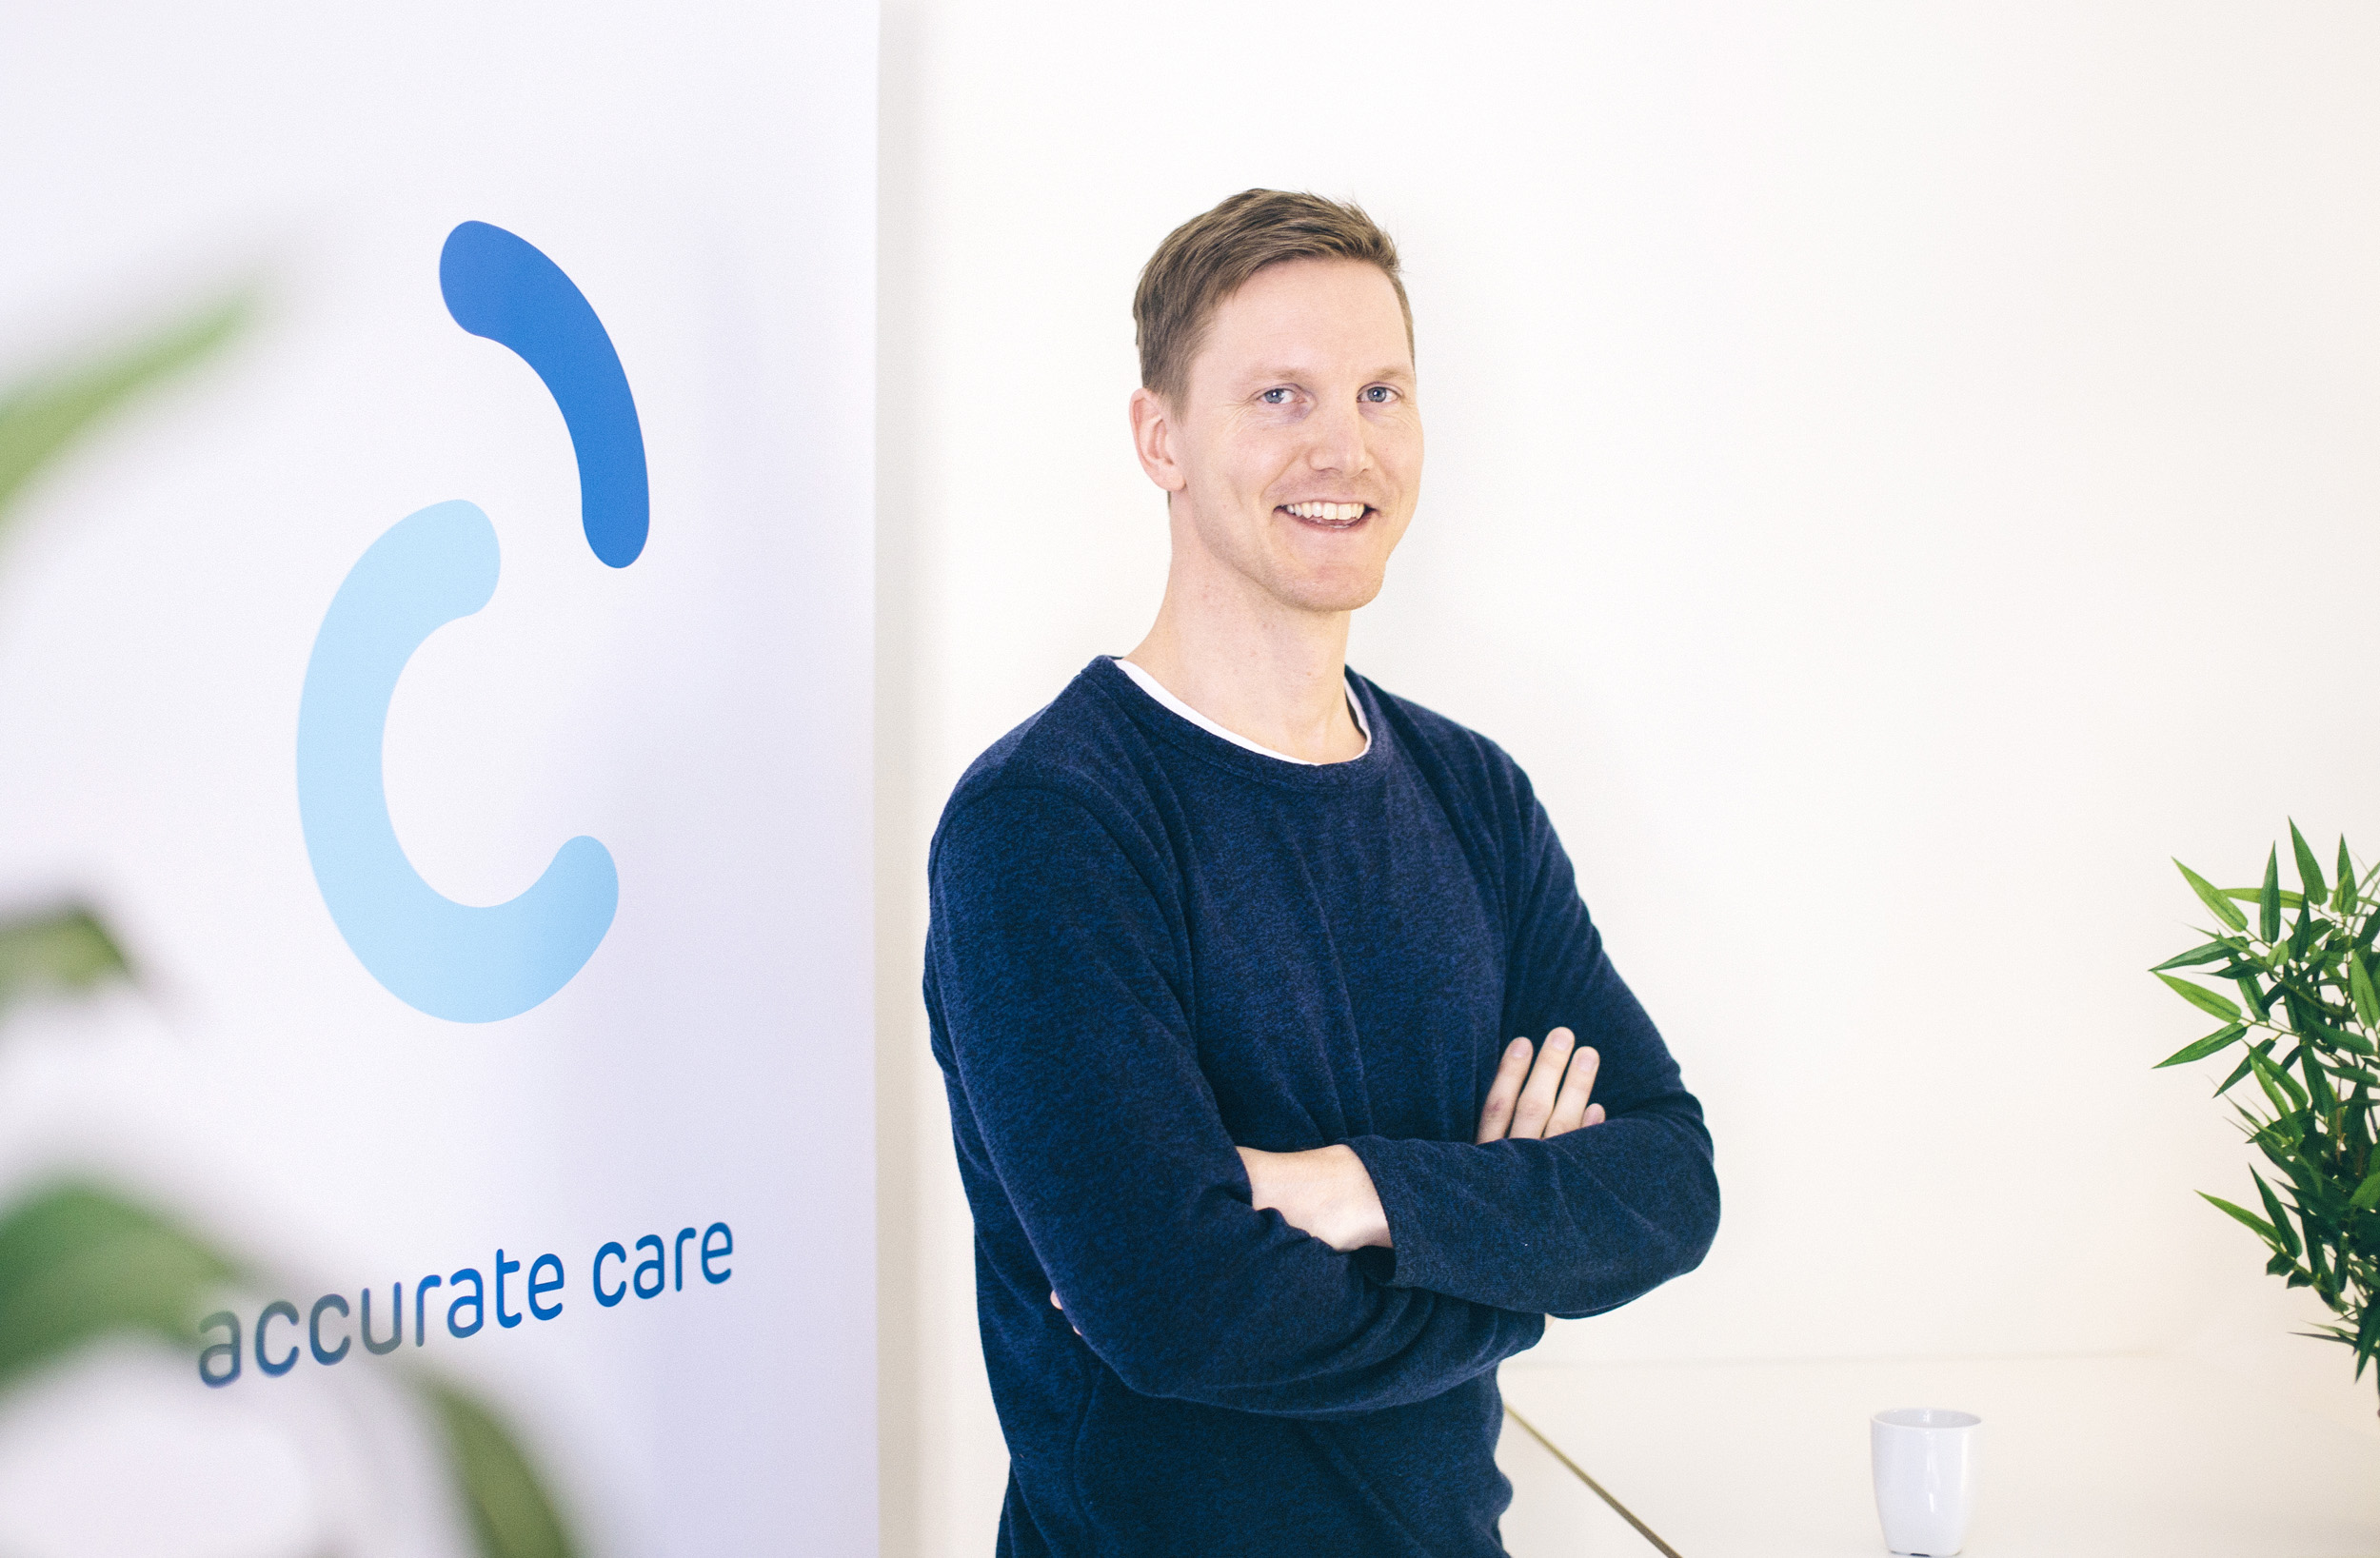 Håvard Haugan  Department manager  +47 908 25 539  havard@acare.no